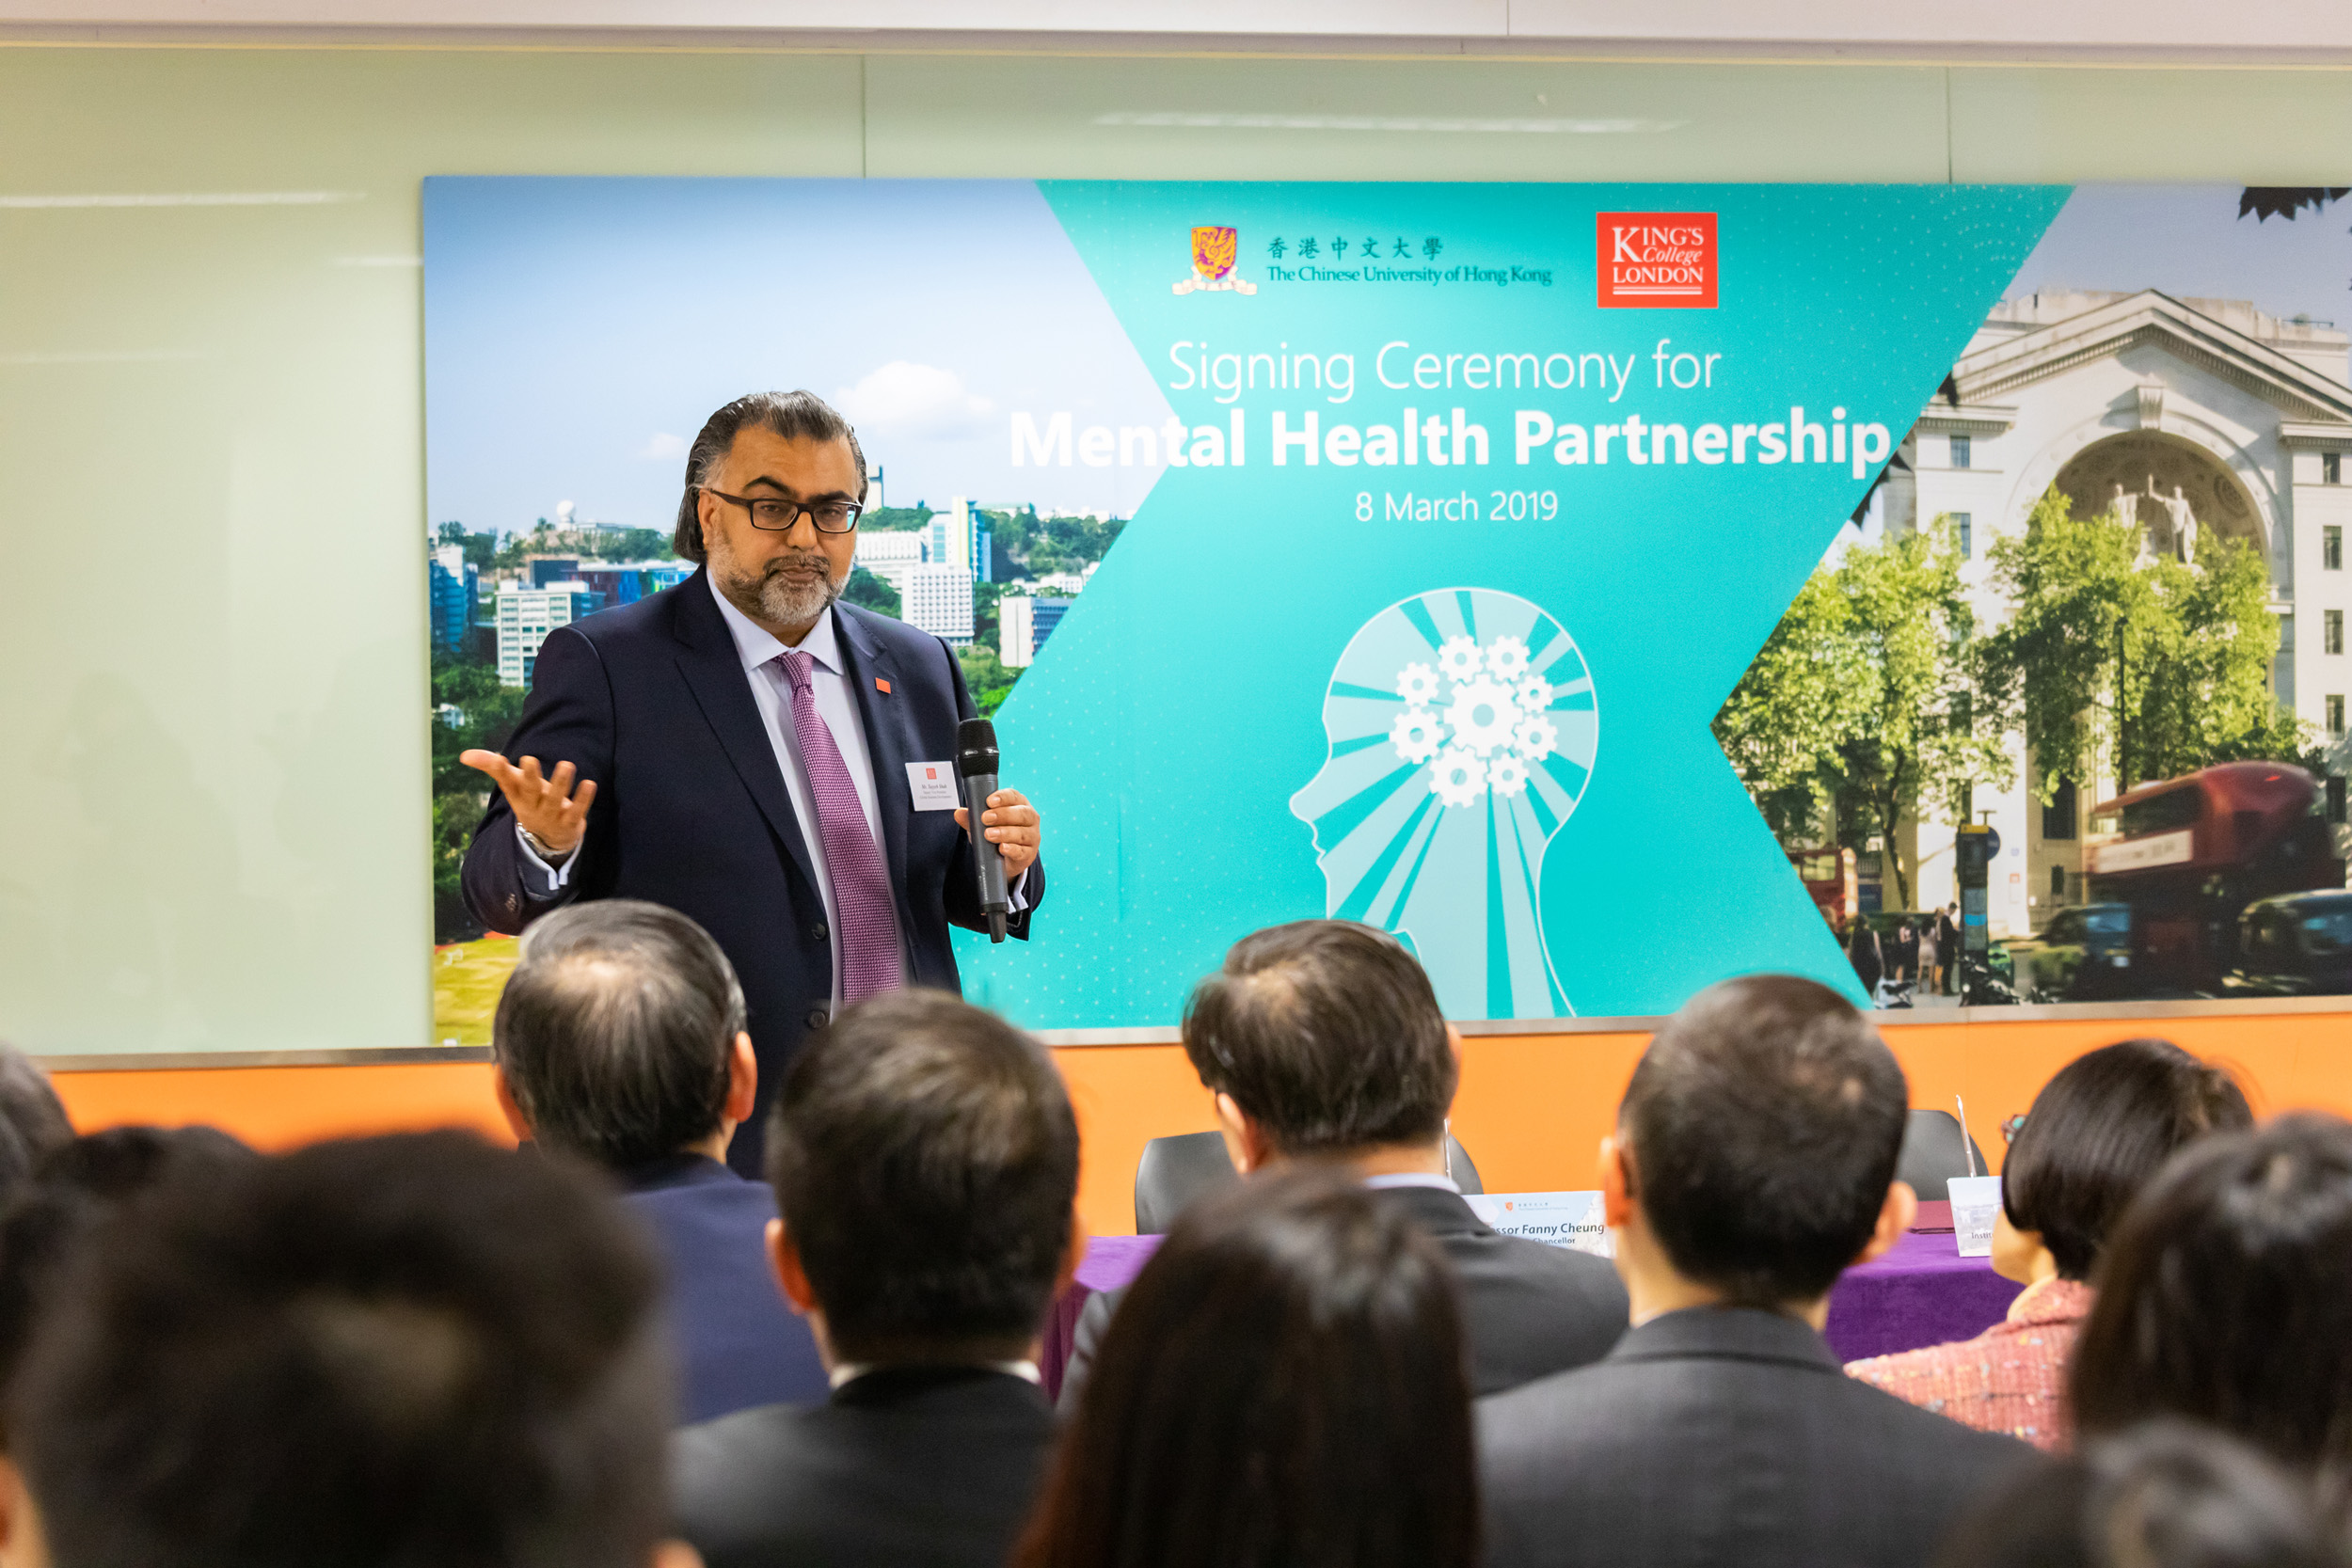 Mr. Tayyeb SHAH speaks on the significance of the CUHK-King's collaboration in tackling mental health problem globally.